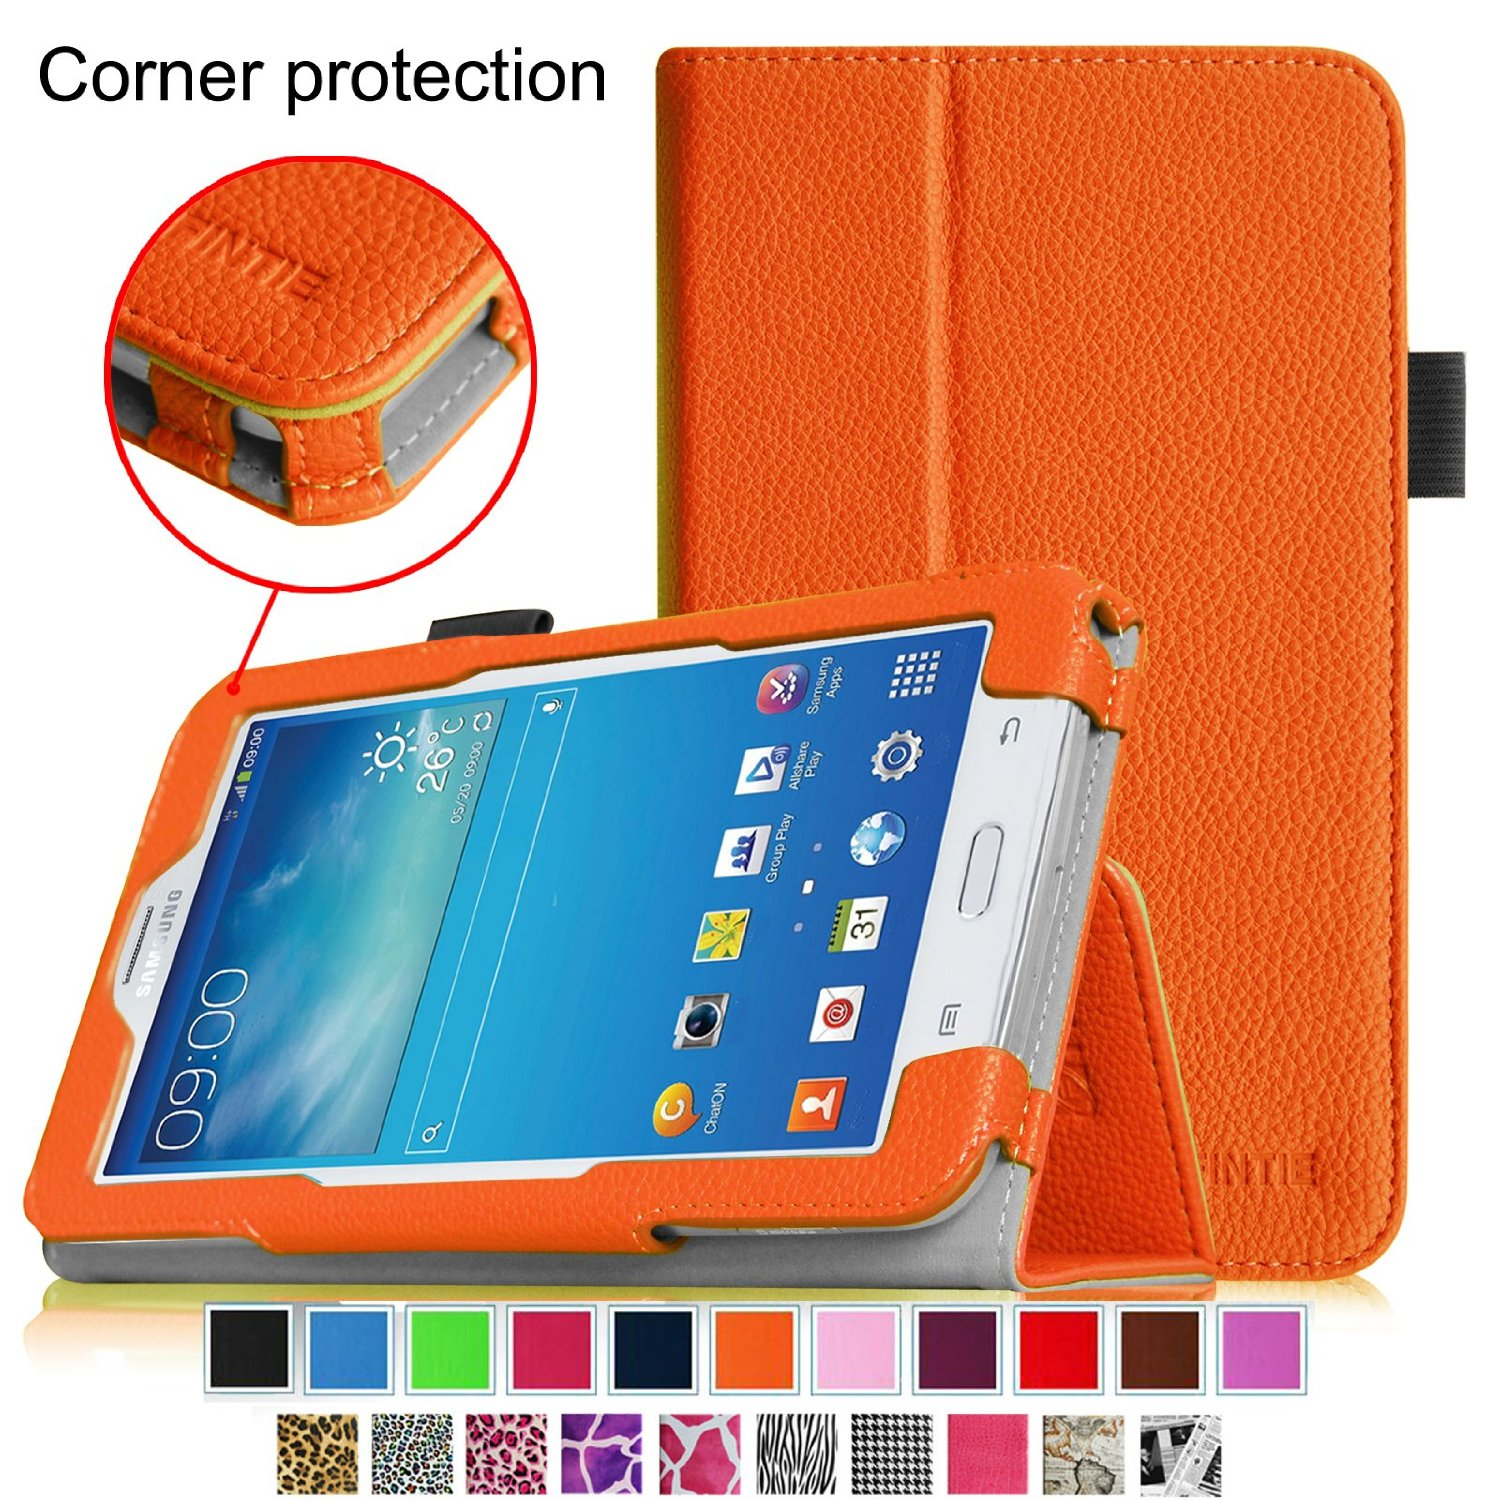 new concept dcc27 25a37 Top 8 Best Samsung Galaxy Tab E Lite 7.0 Cases And Covers